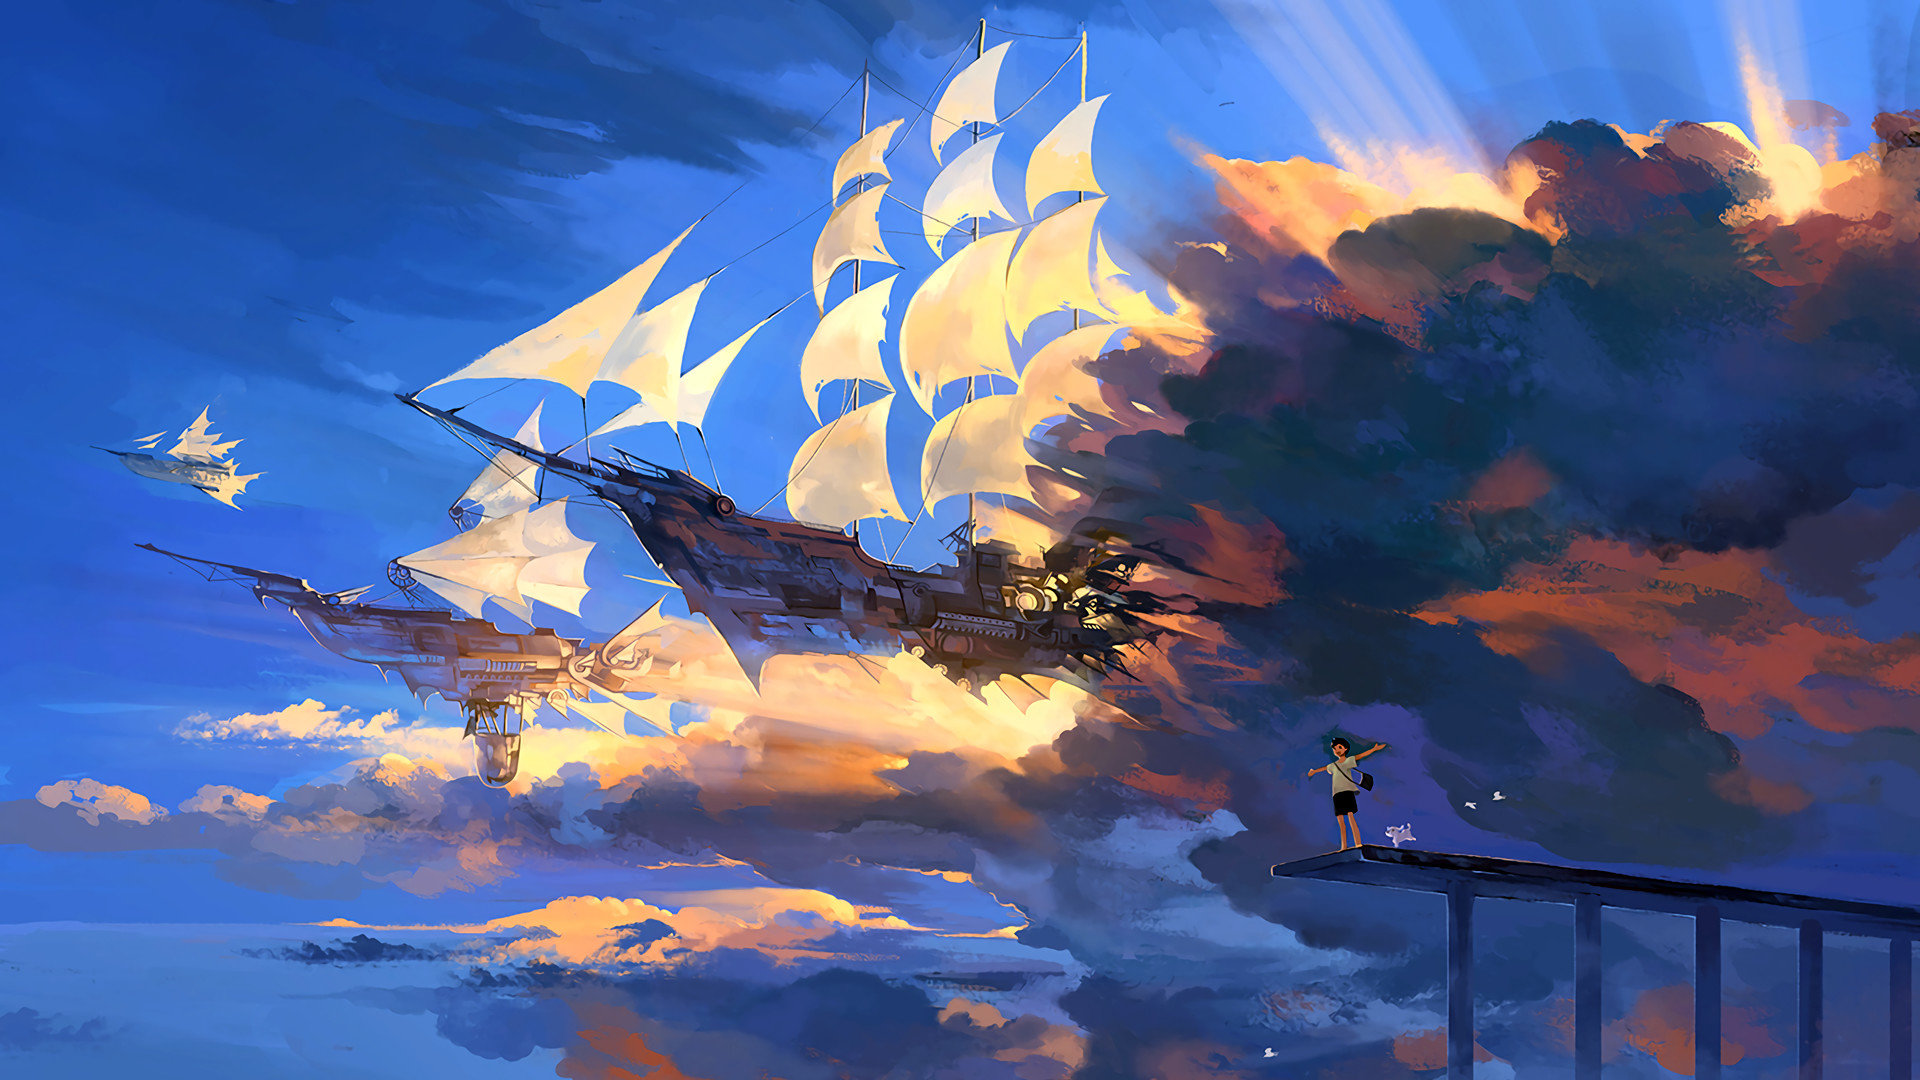 Free Download Fantasy Ship Wallpaper Id 194714 Full Hd 1080p For Desktop